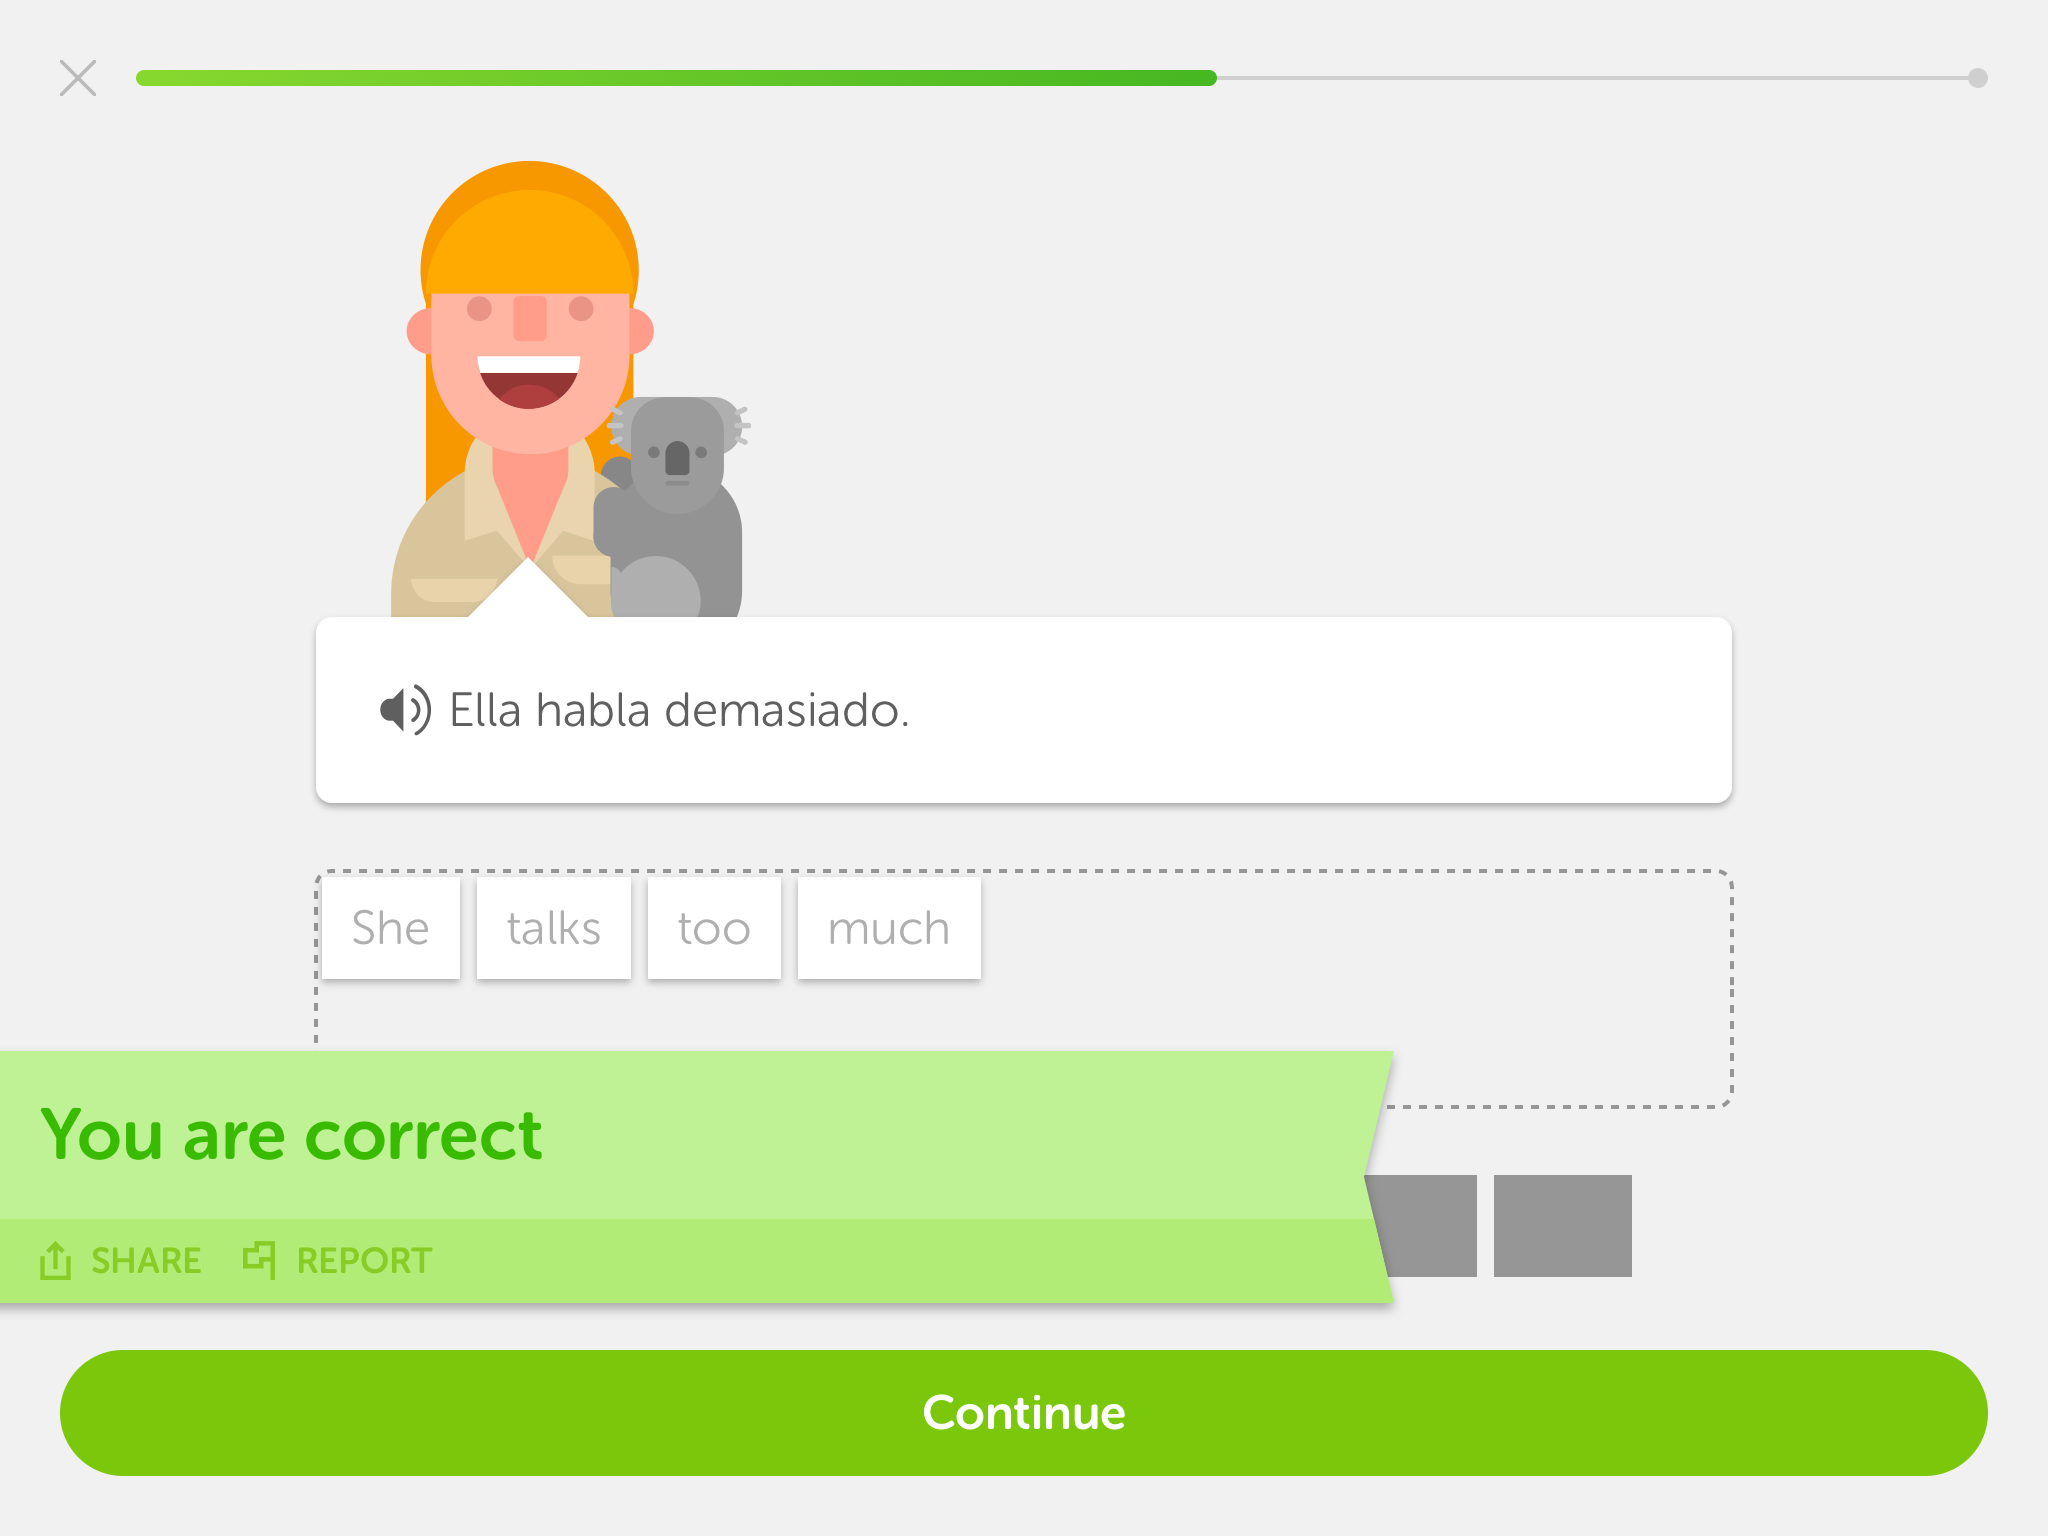 Pin by Magdalena on Duolingo (With images) | Duolingo ...